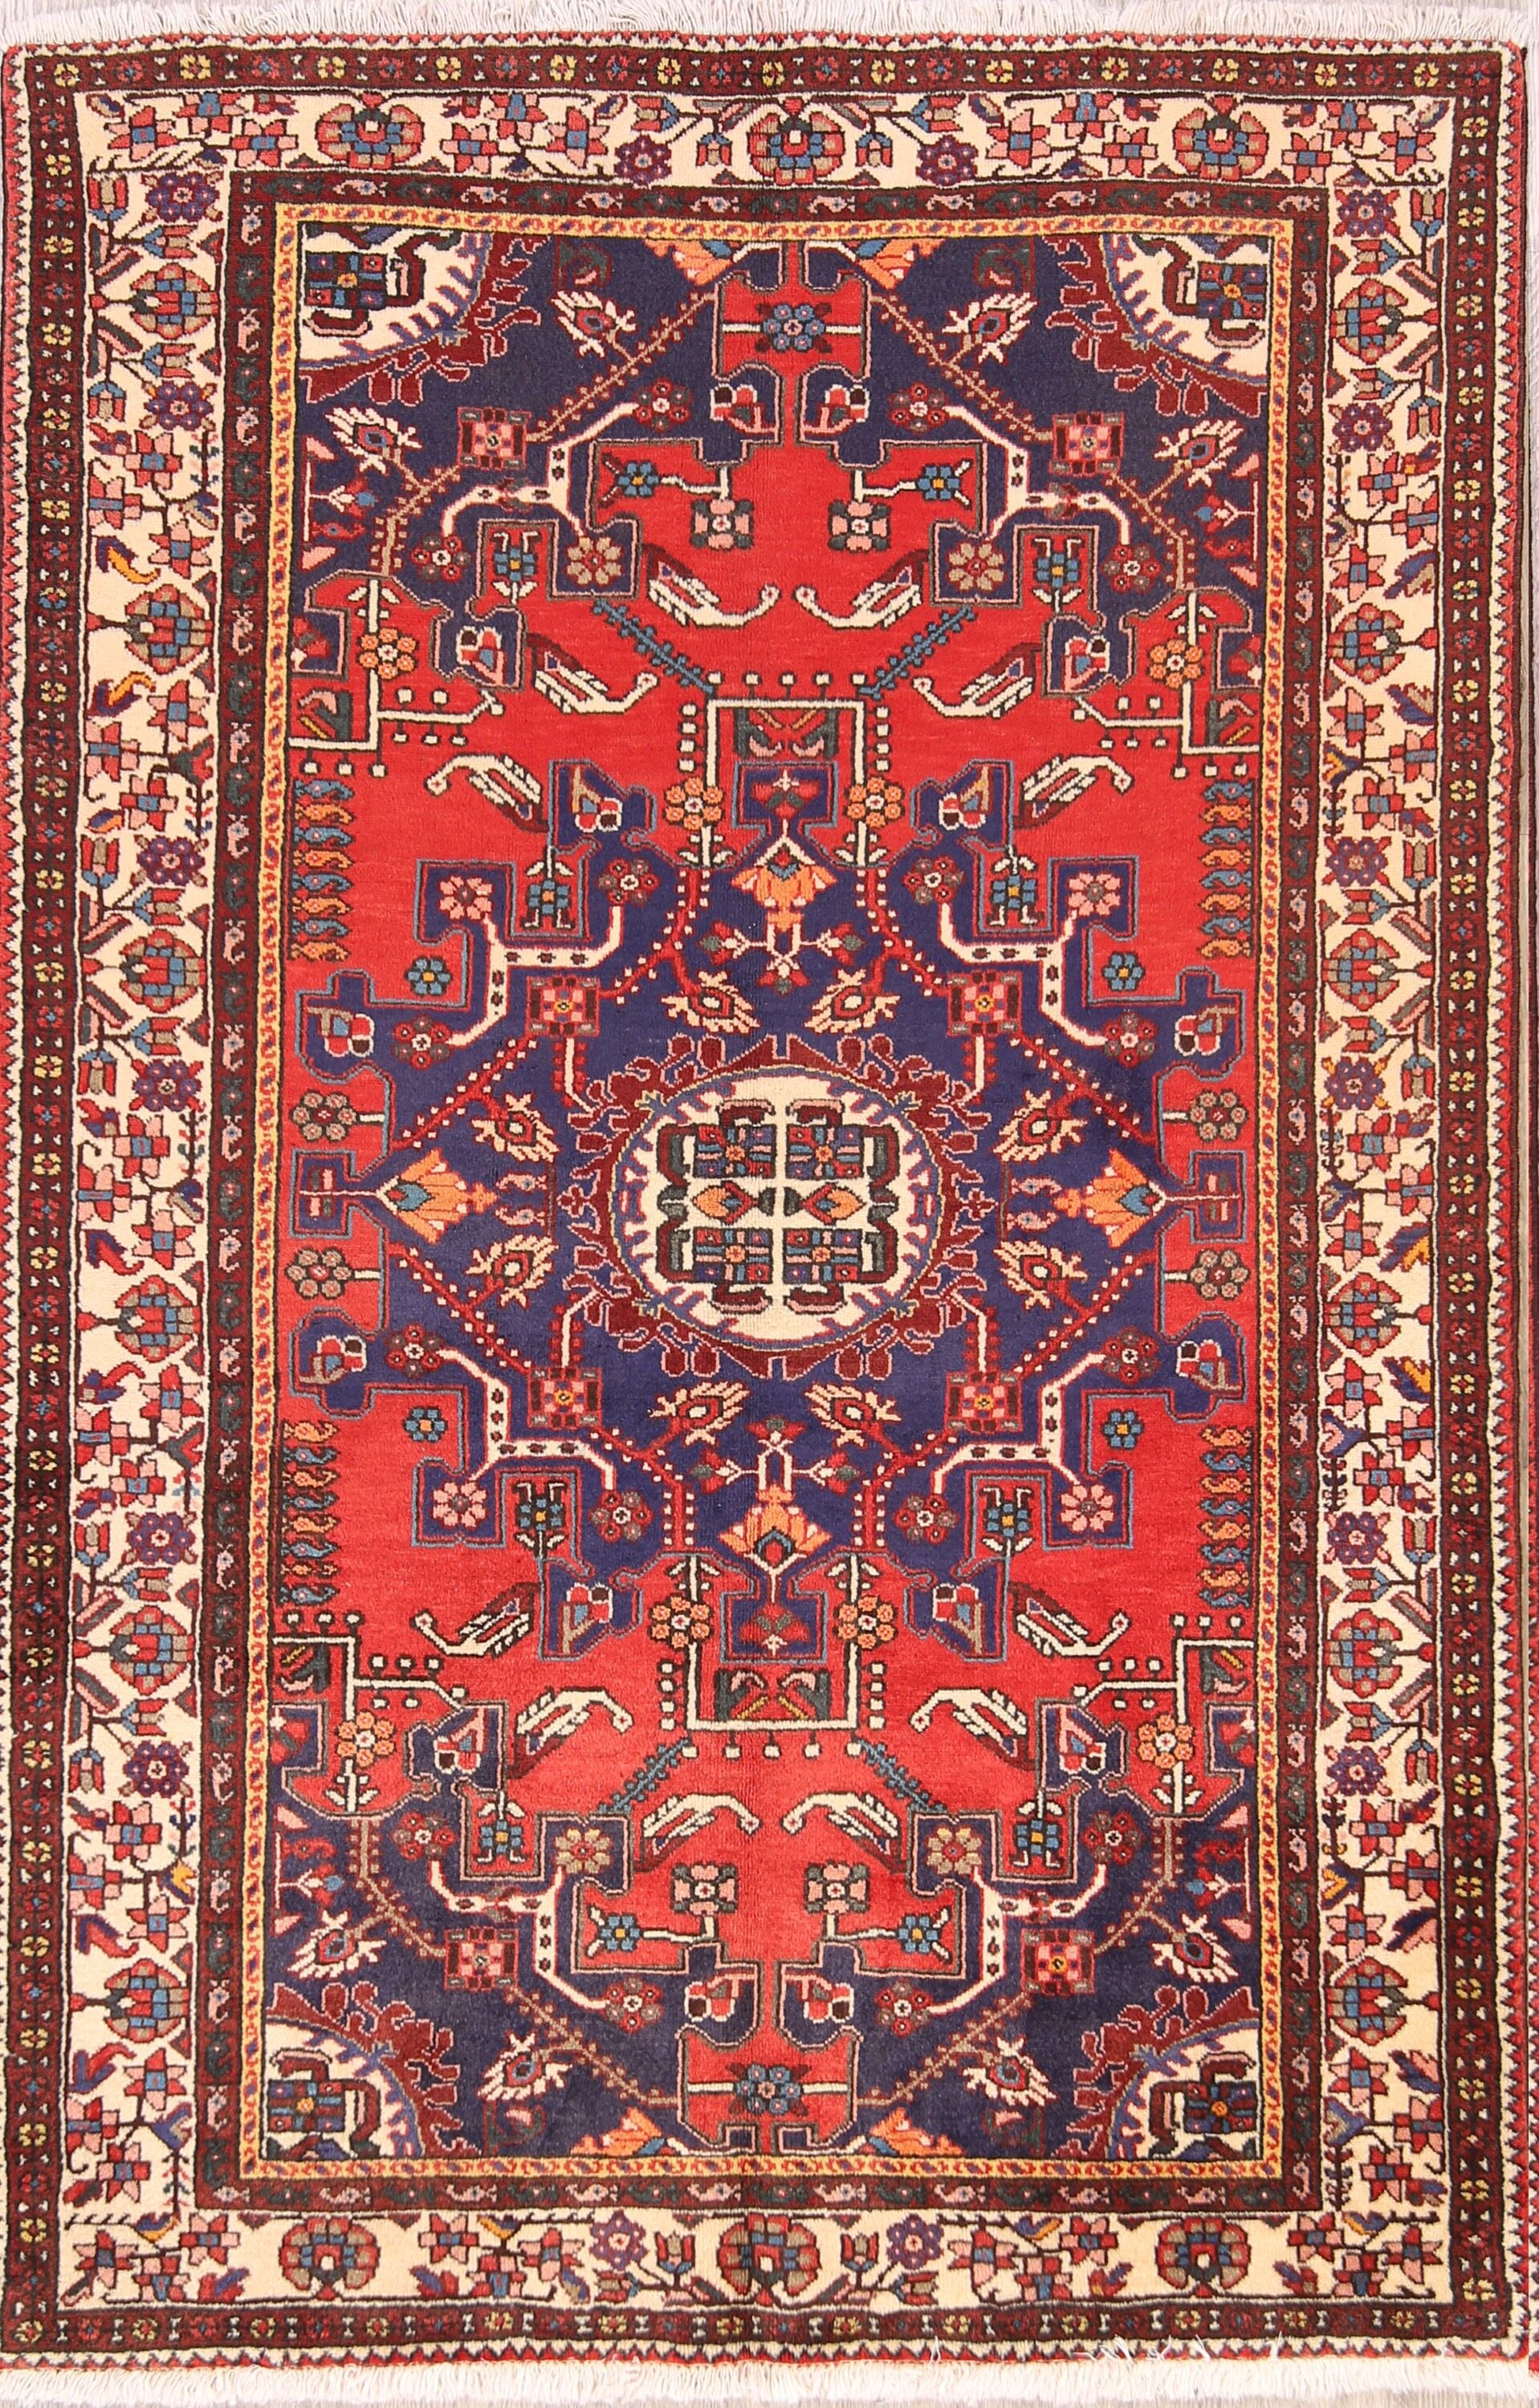 One-of-a-Kind Geometric Malayer Hamedan Vintage Persian Hand-Knotted 4'4